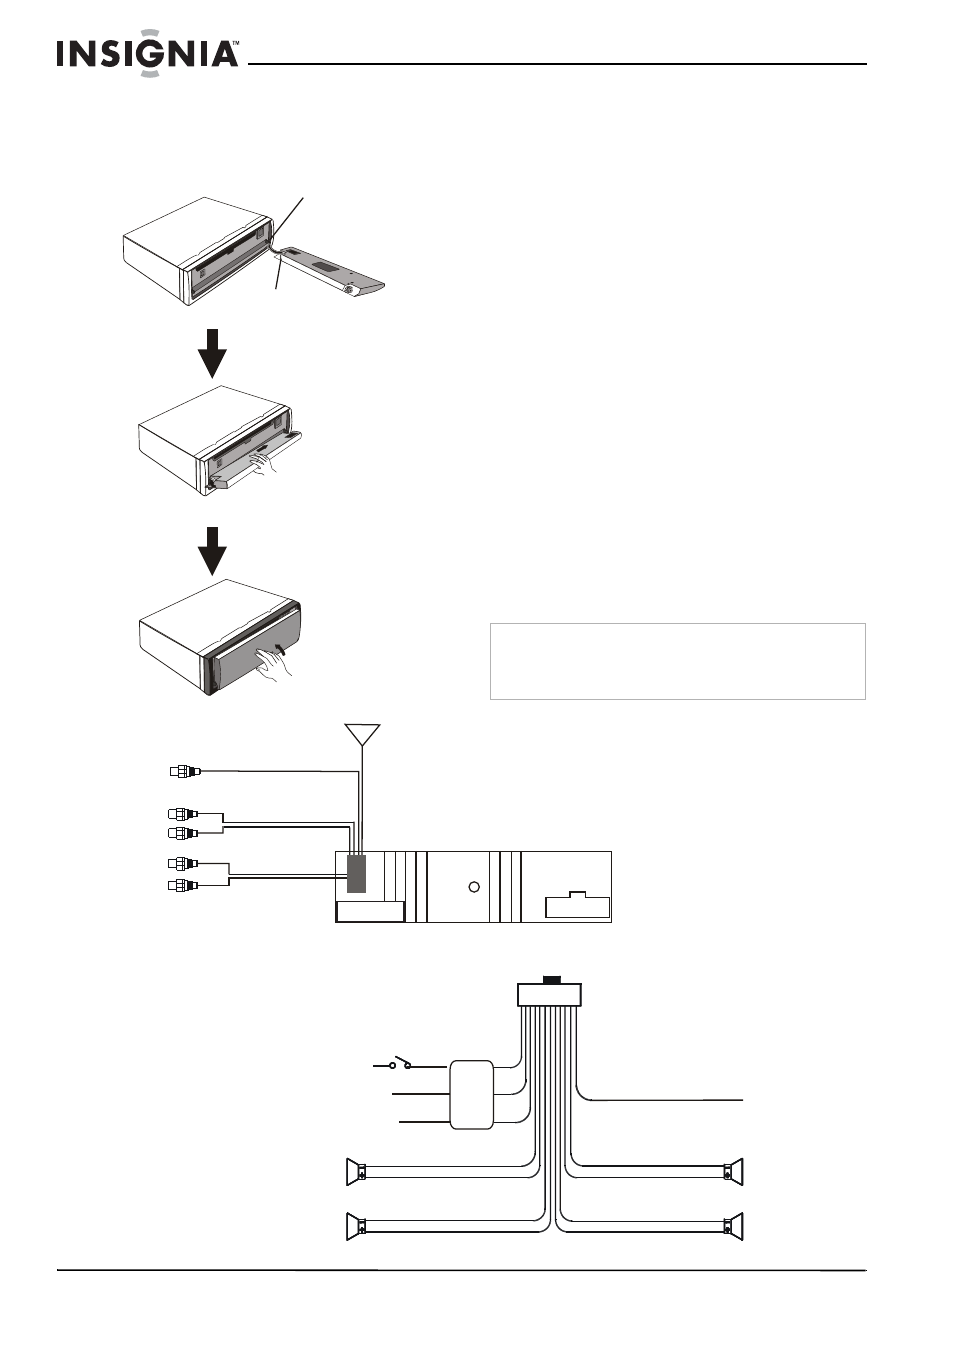 Installing The Front Panel Wiring Your Car Cd Deck Insignia Ns Frontpanelwiring C4113 User Manual Page 8 16